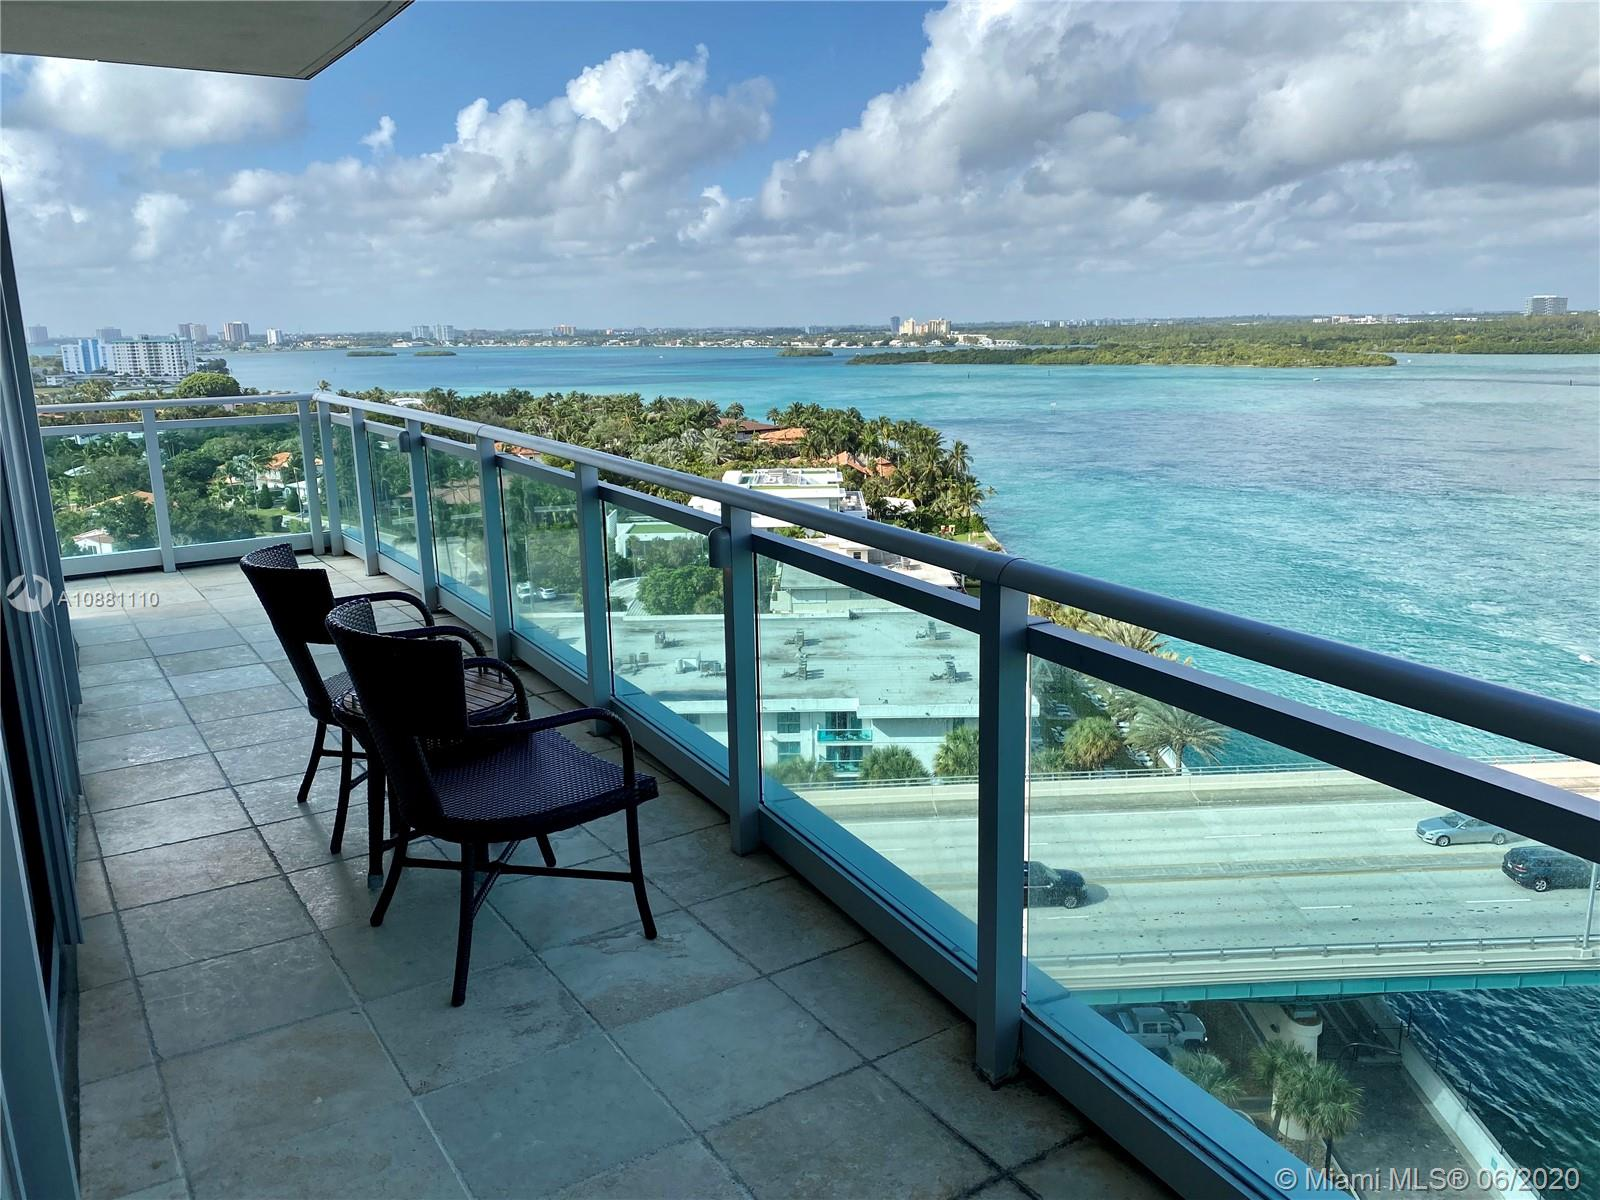 Exquisite 1 Bedroom Condo-Hotel Residence in the 5 stars, luxury ONE Bal Harbour. Panoramic views of the Atlantic Ocean, and beautiful sunsets from a wrap-around terrace. Exquisitely decorated with top of the line furnishings. Hotel Management program is optional, not mandatory. For a showing please call Listing Agent.